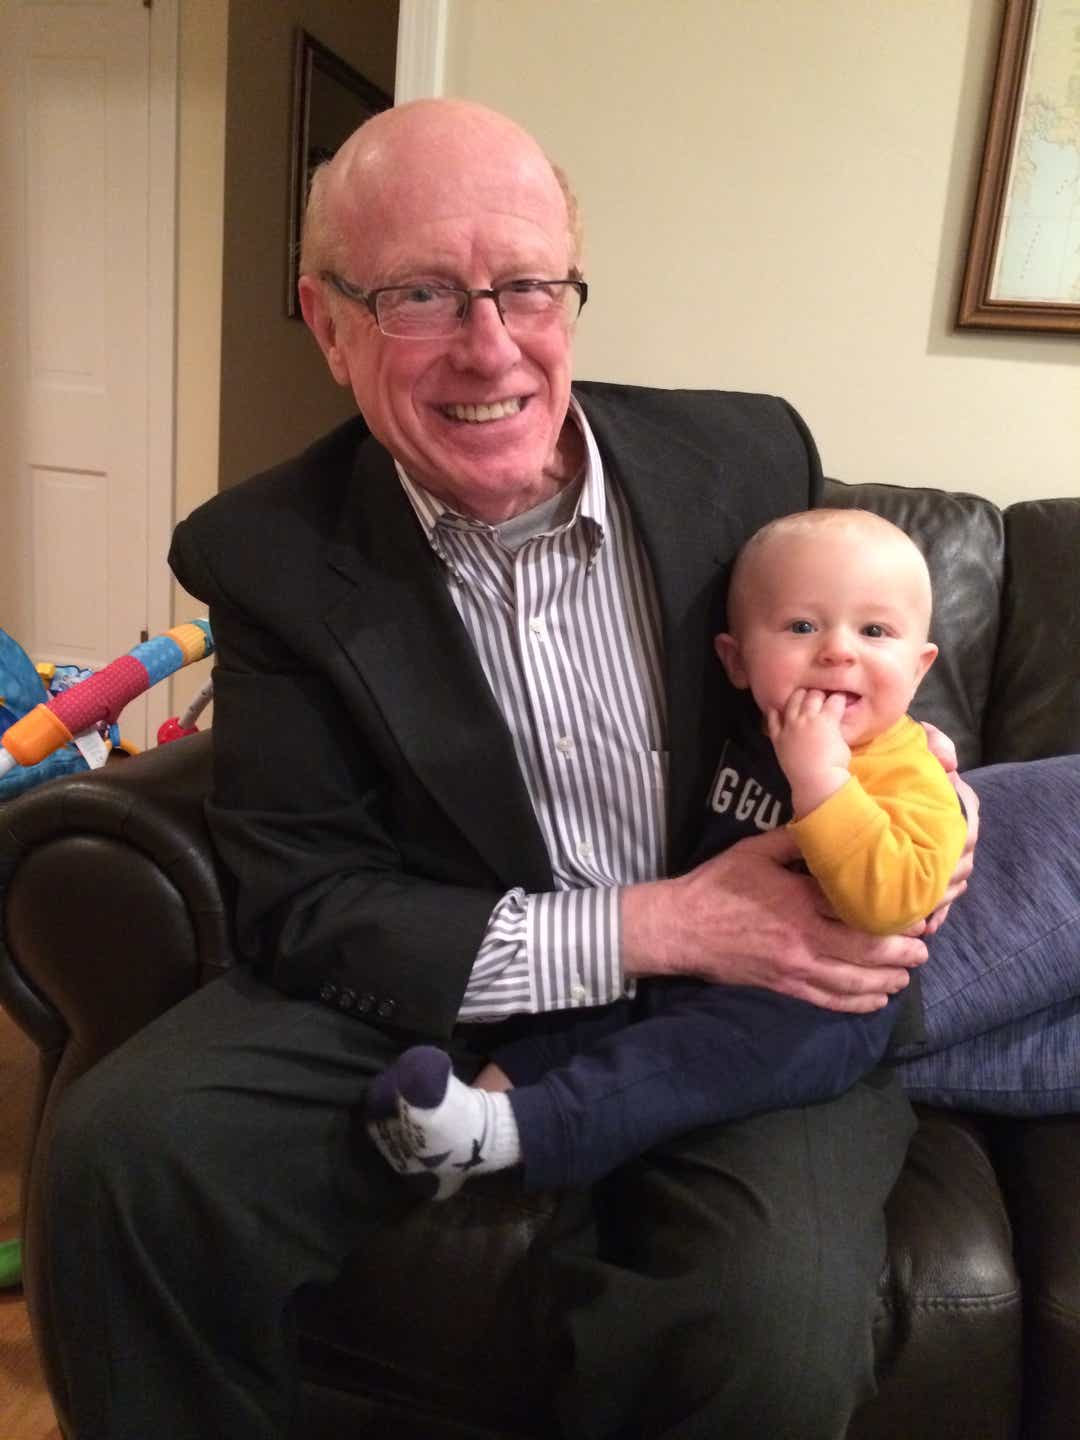 Donald Adair and his grandson, Leo, in a photo taken in 2013 when Leo was six months old. we hear you